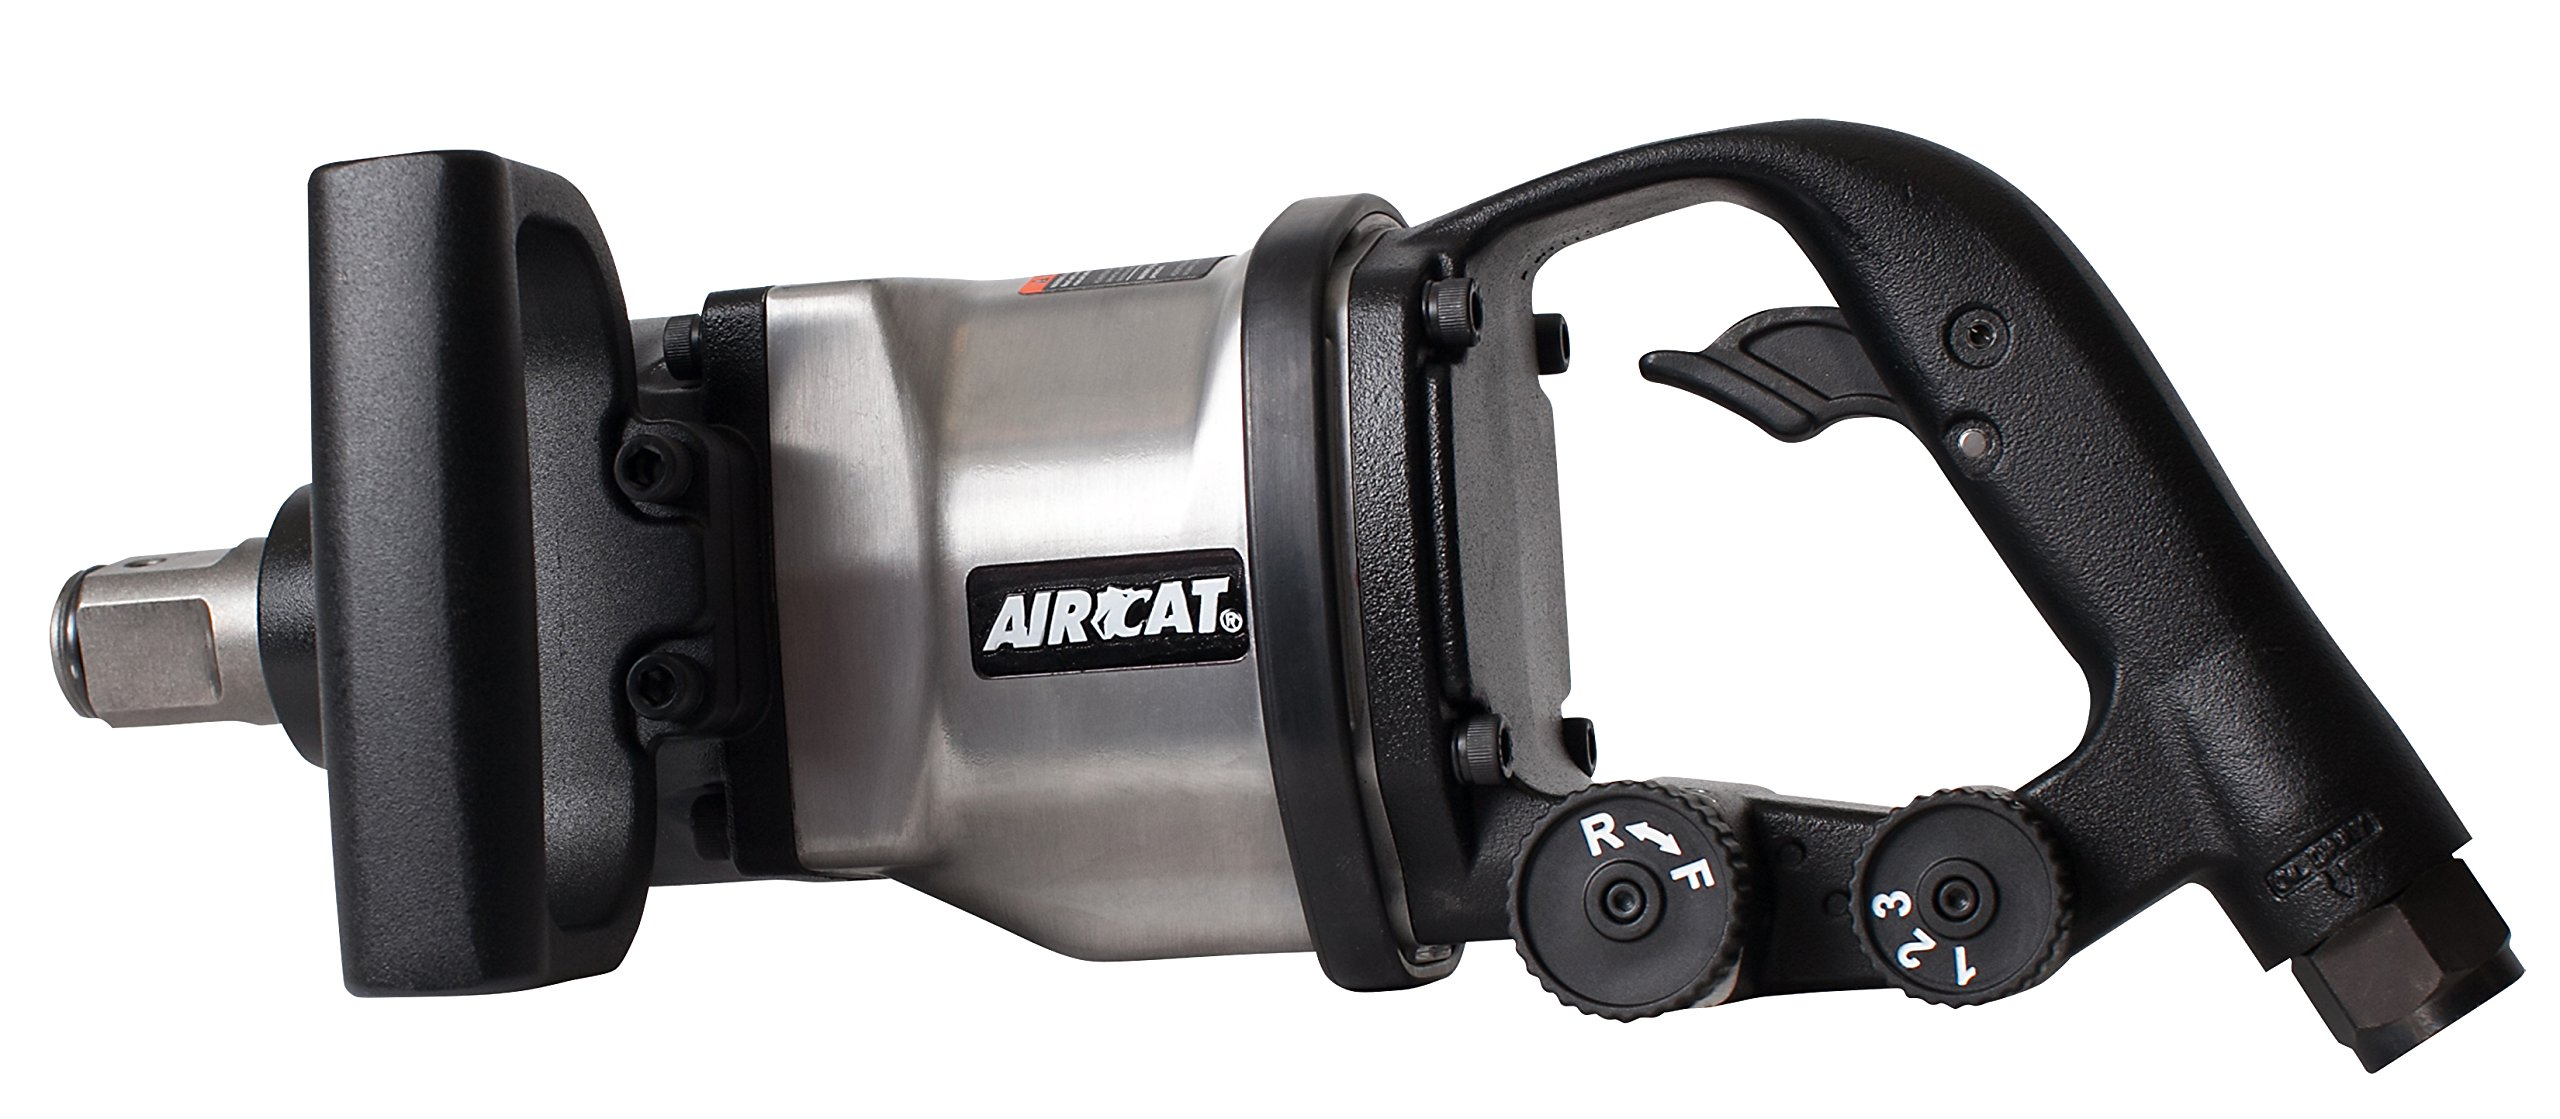 AIRCAT 1891-1 Low Weight Impact Wrench, 1'' Drive 12.9'' Long, Silver & Black